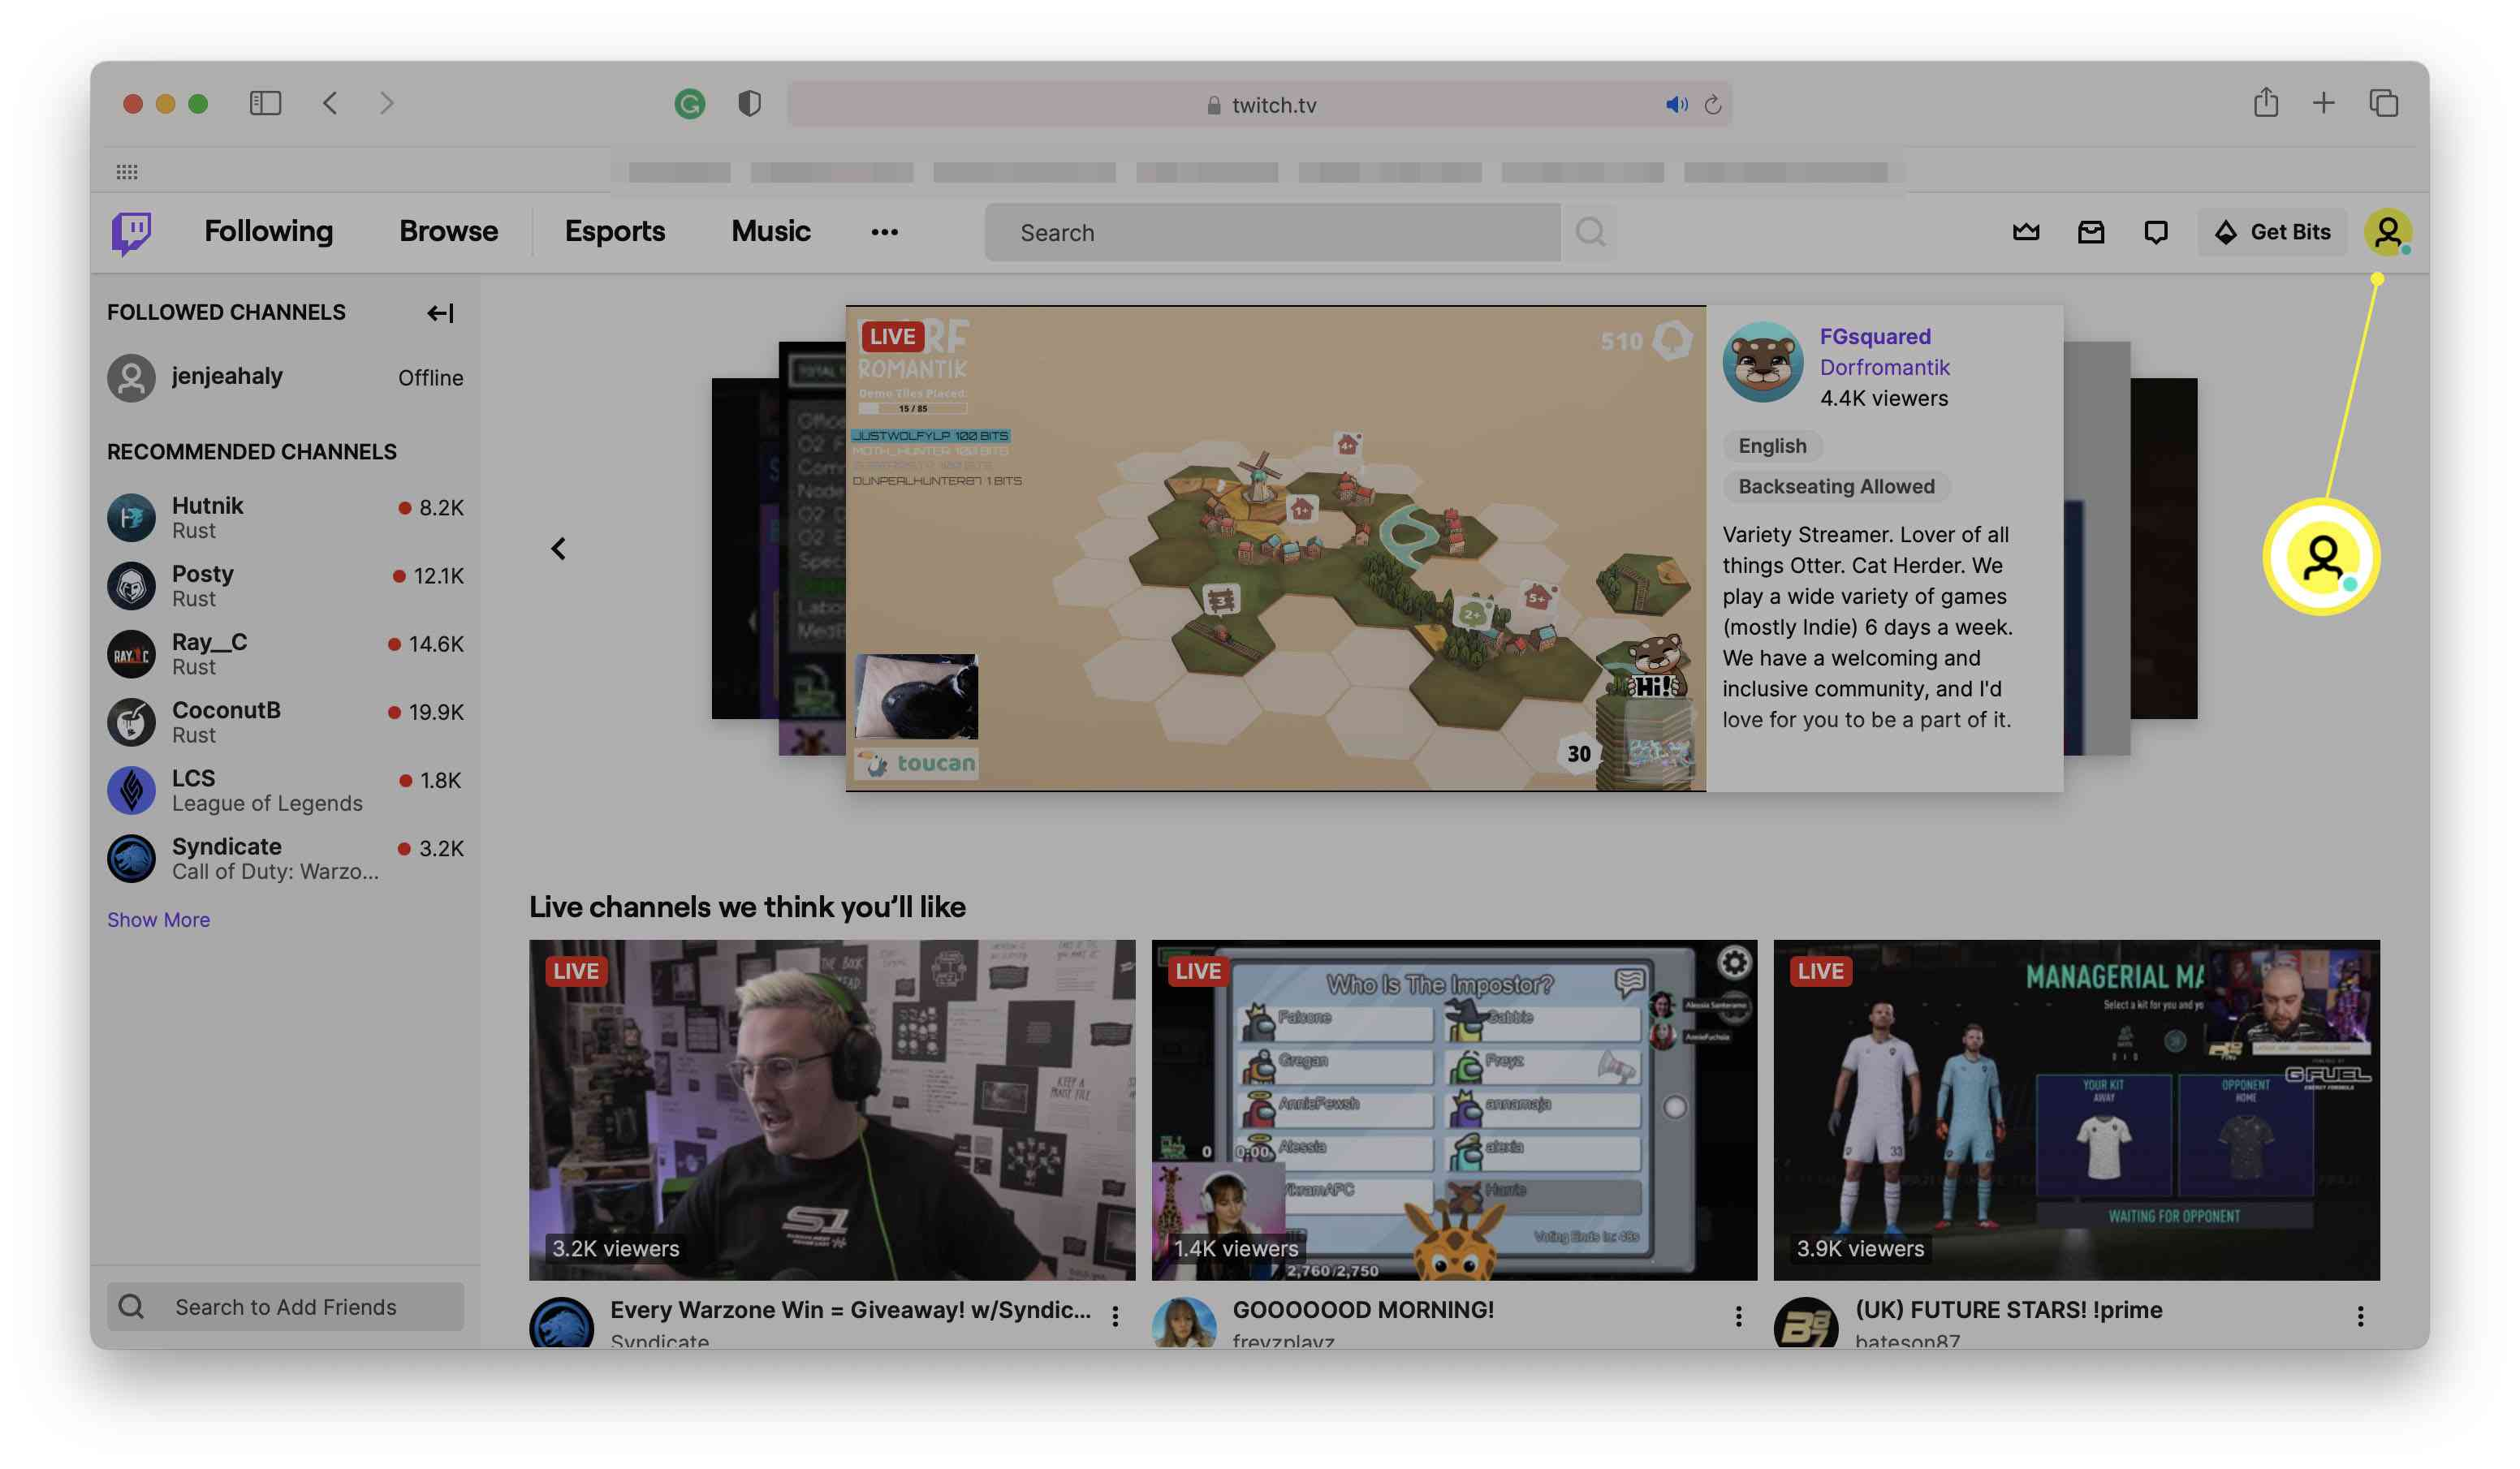 Twitch home page with profile image highlighted